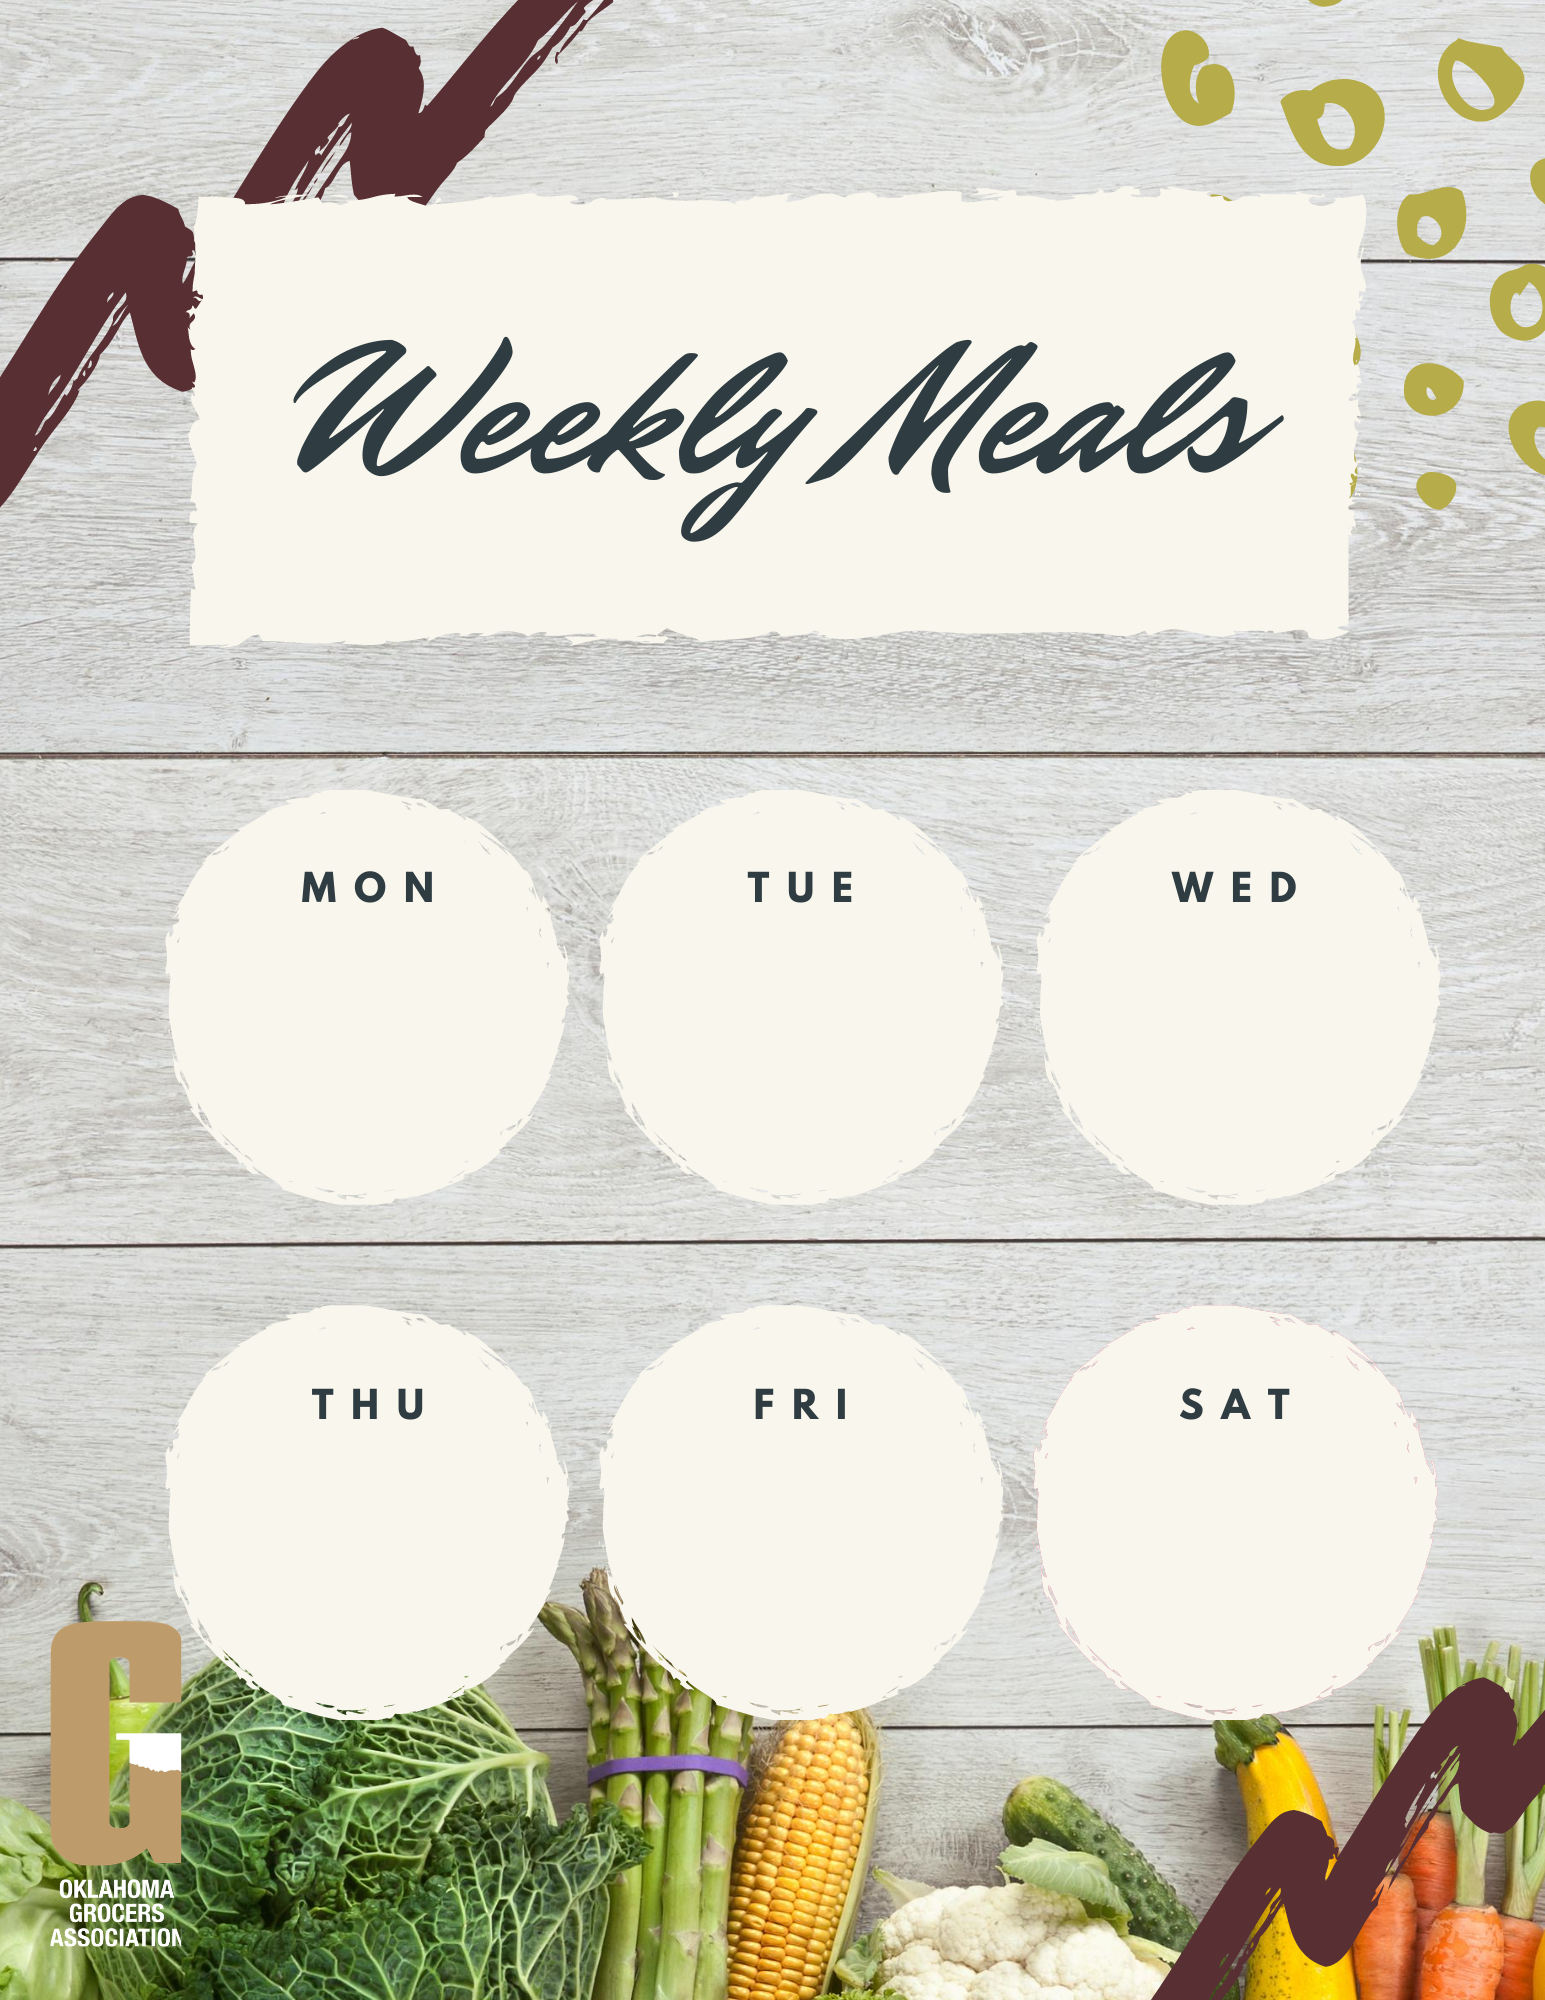 Free printable weekly meal planner courtesy of OGA